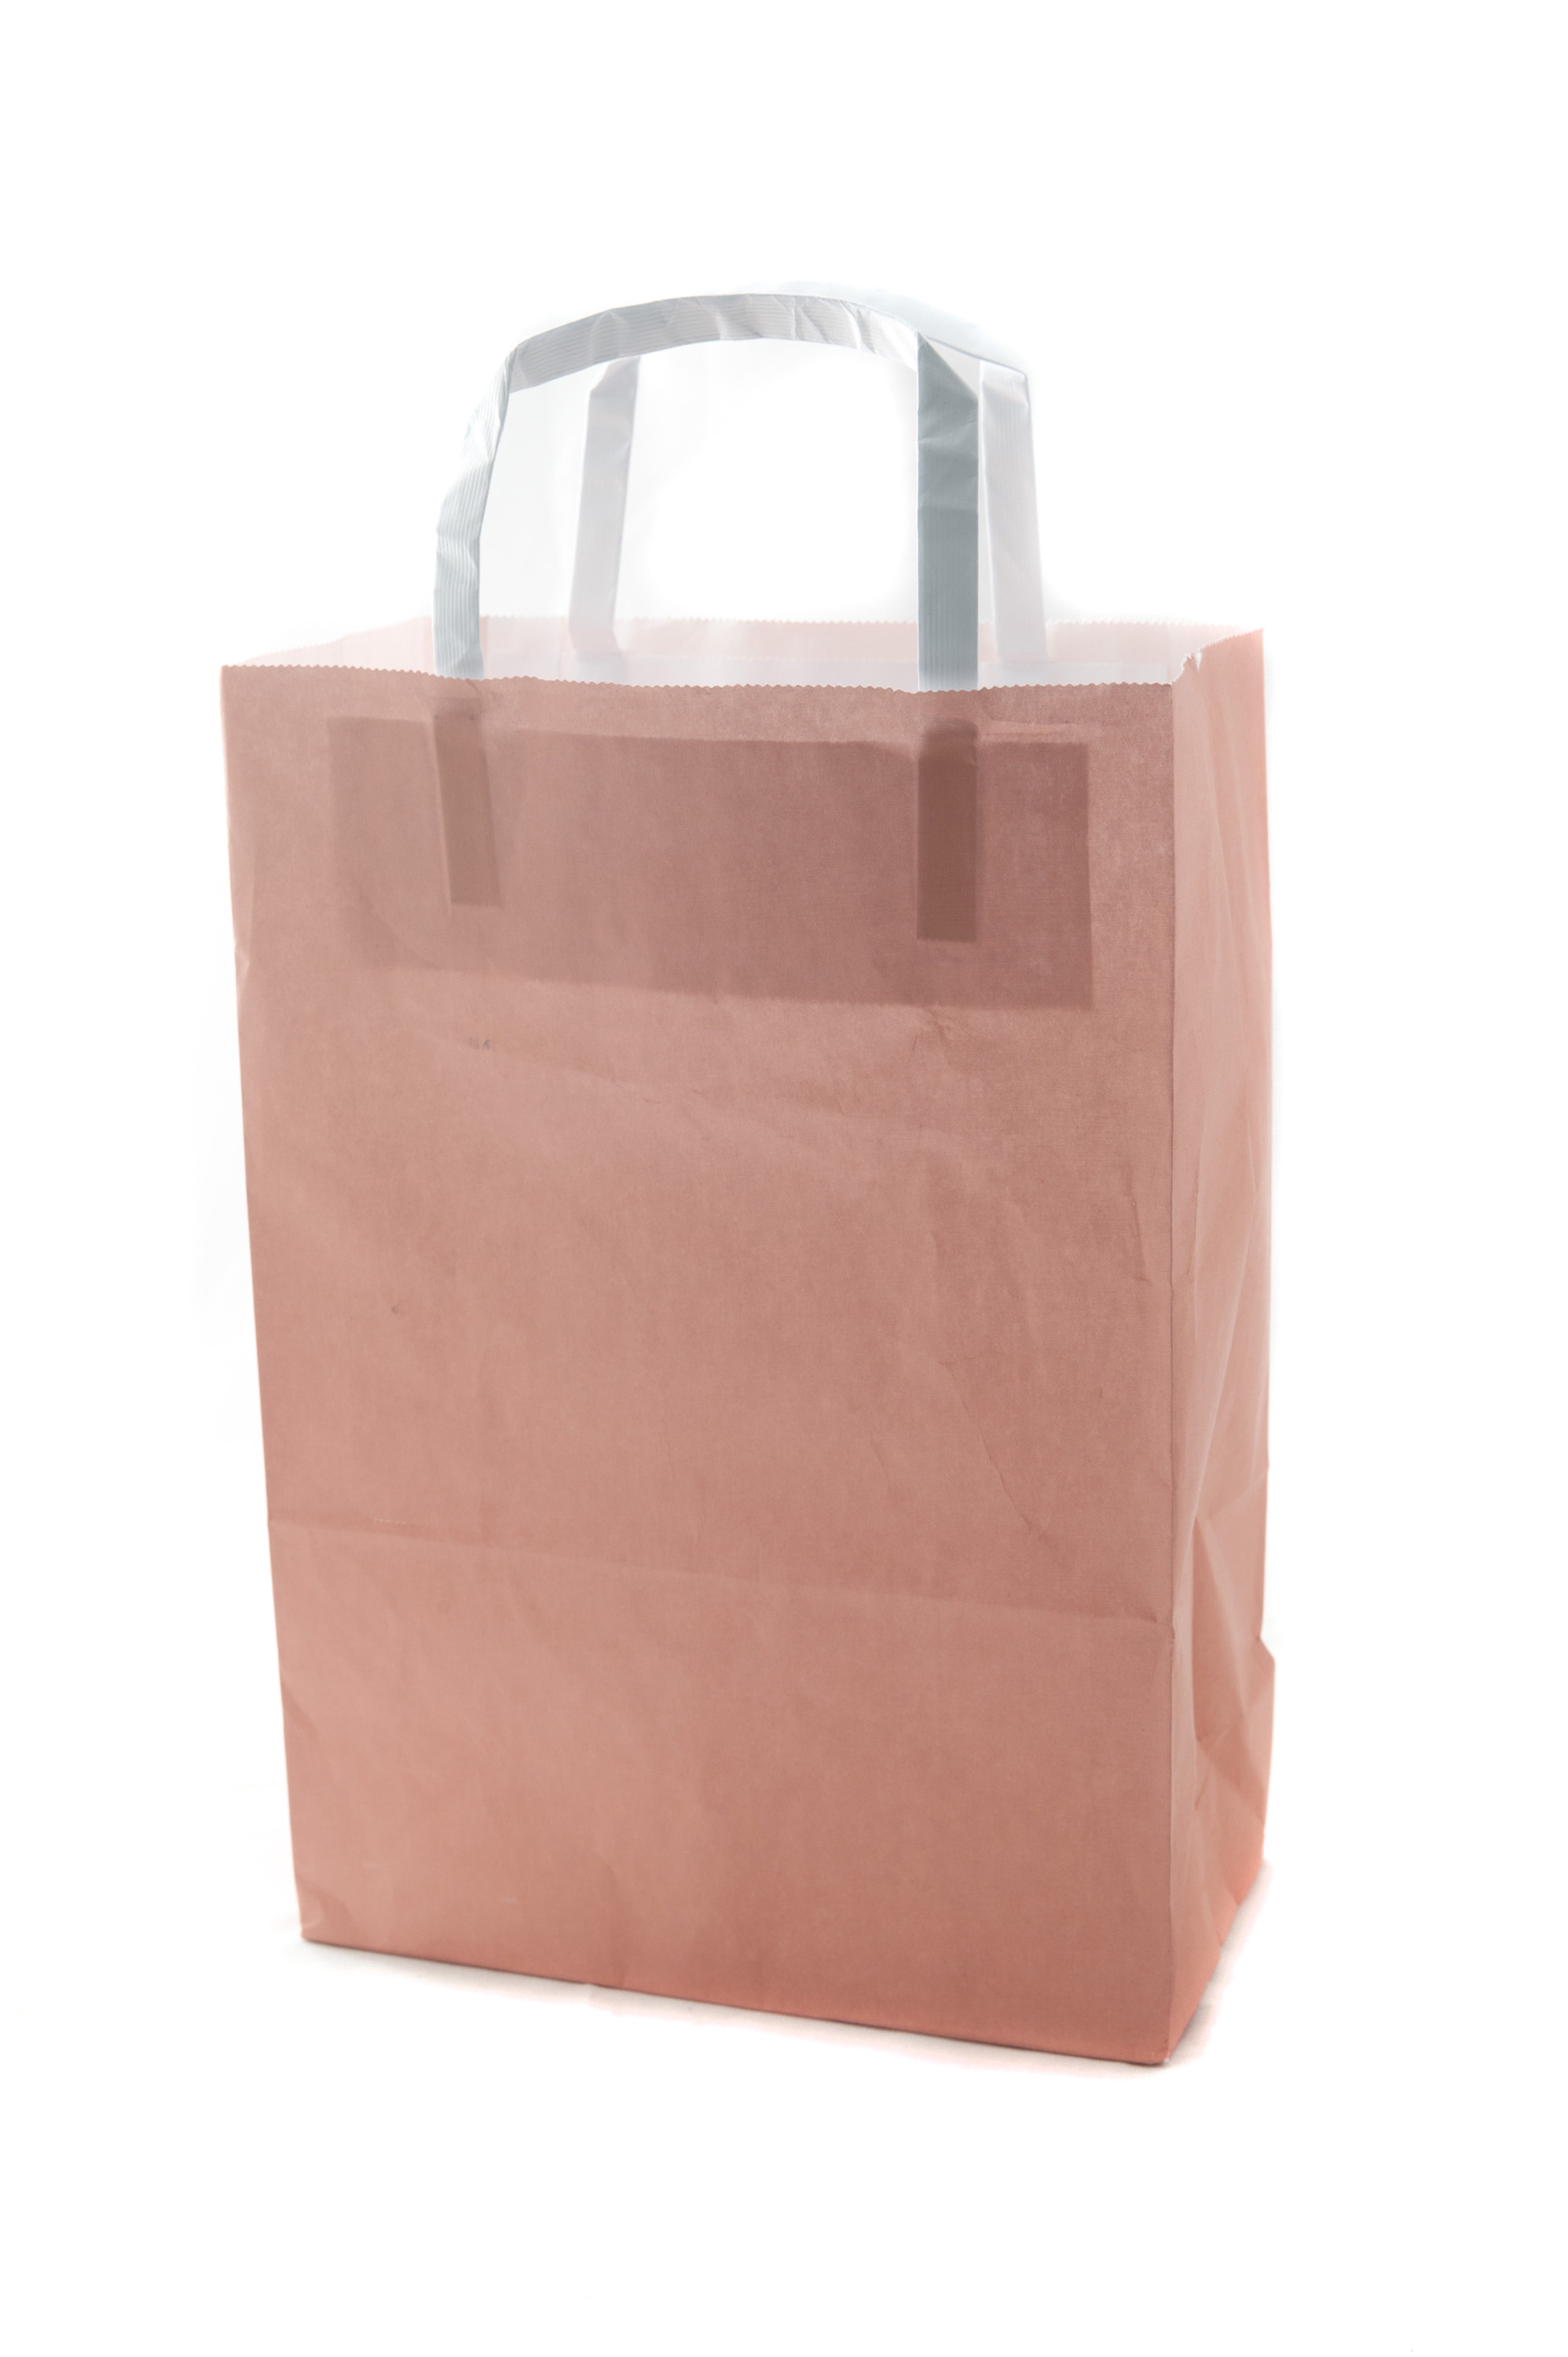 Brown paper gift or carrier bag suitable to be recycled with handles and copy space for branding isolated on white